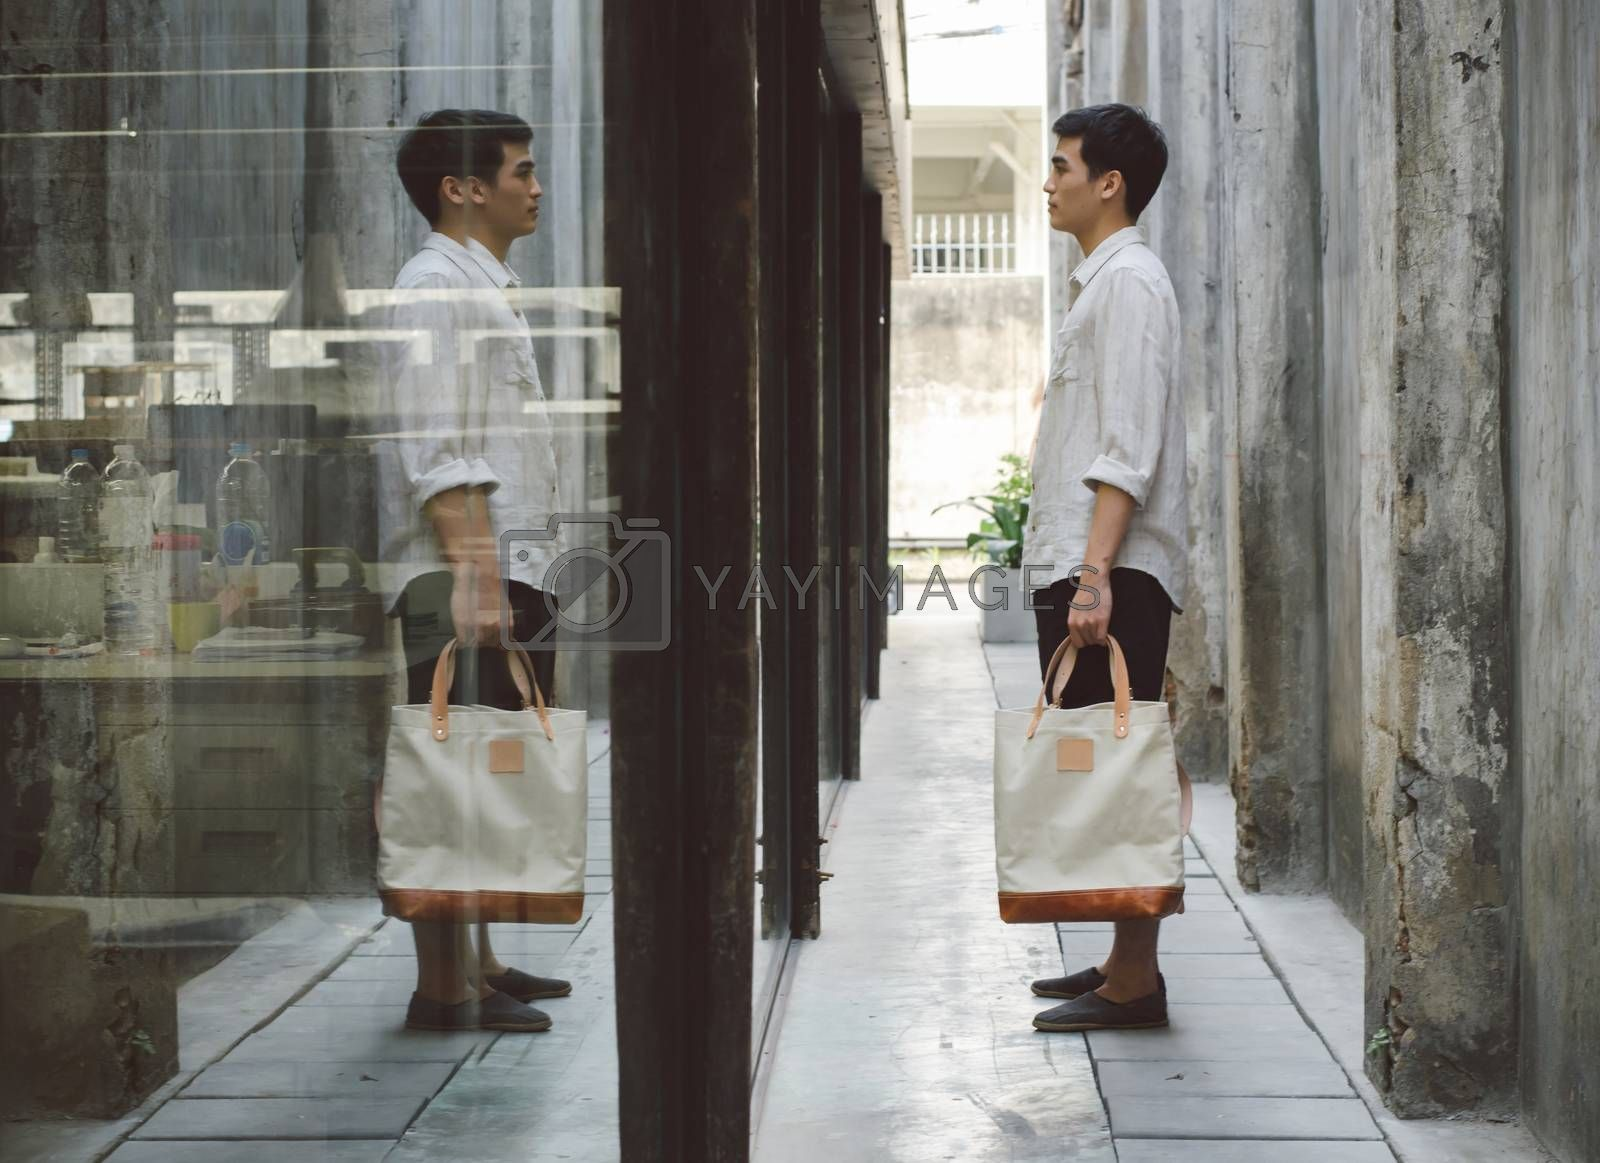 Royalty free image of Attractive man with canvas bag at grunge alleyway by siraanamwong